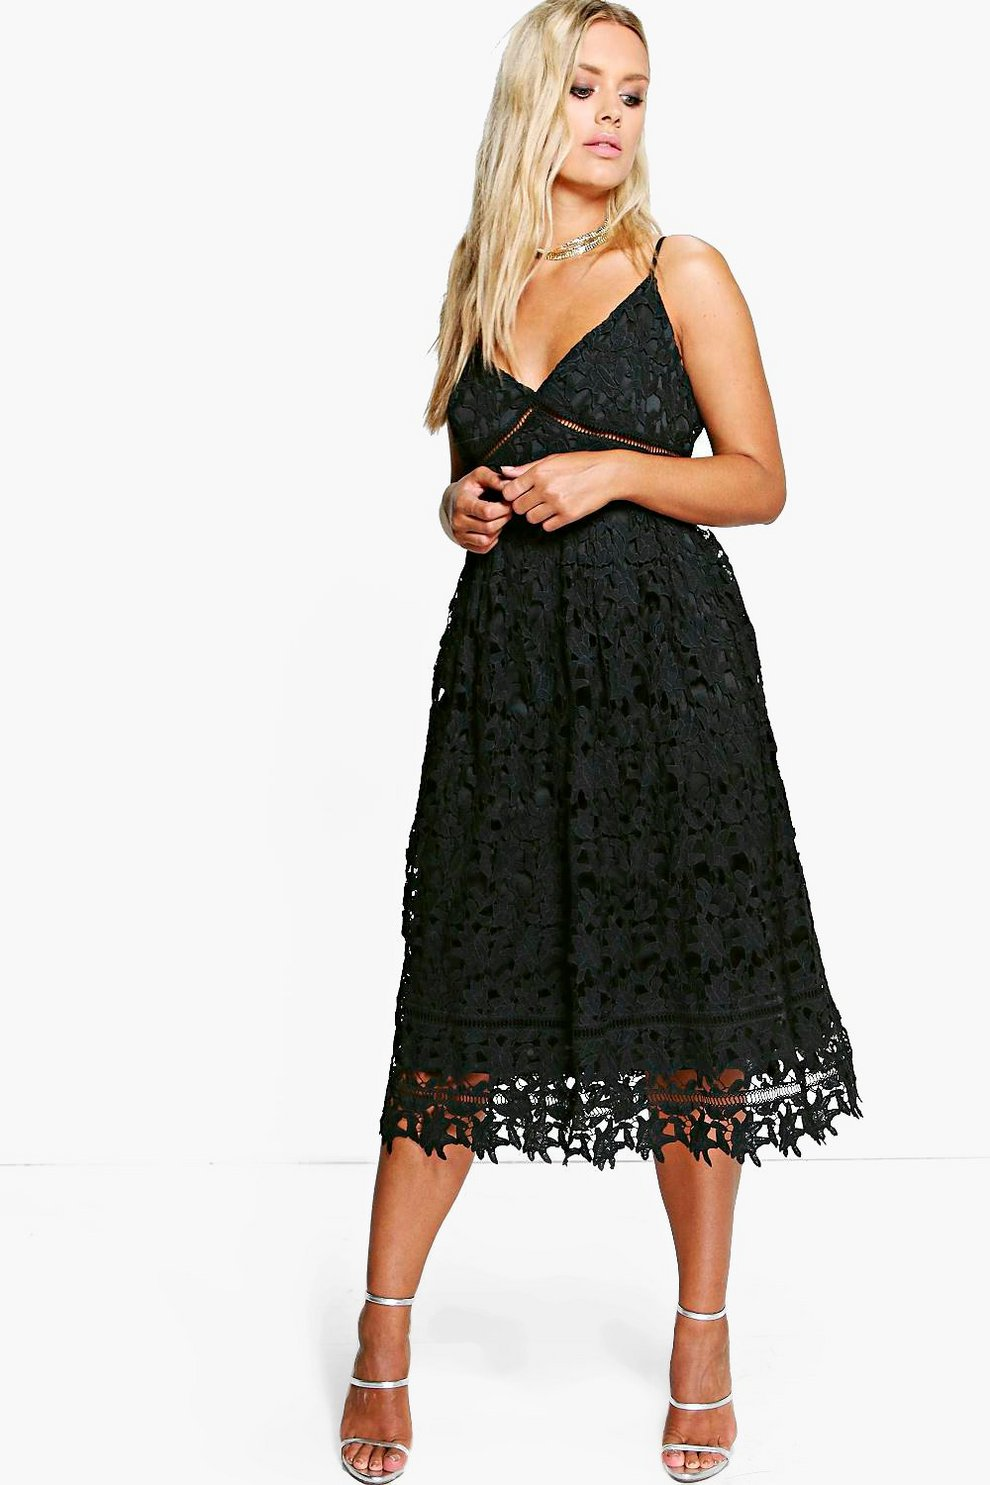 35bc3d93fdf Womens Black Plus Leila Applique V Neck Lace Skater Dress. Hover to zoom